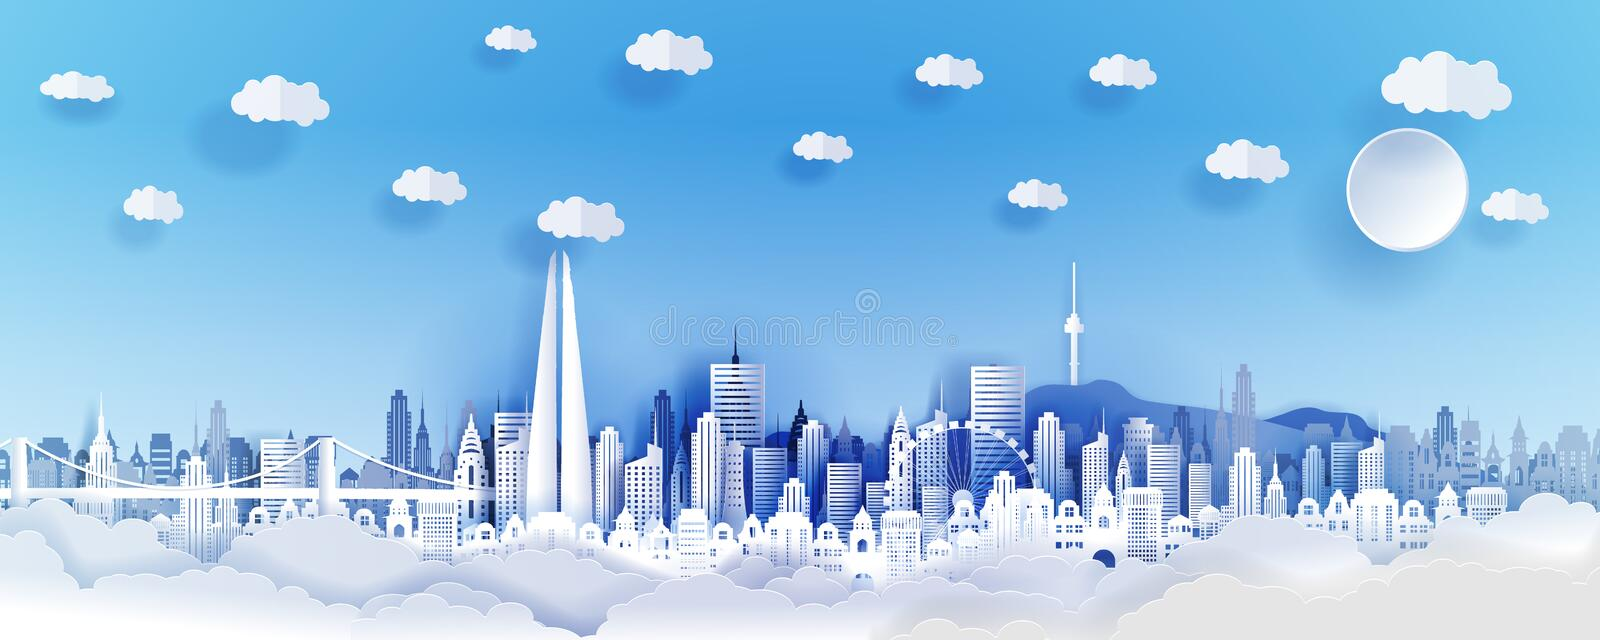 Seoul city concept, Korea. Paper art city on back with buildings, towers, bridge, clouds. royalty free illustration